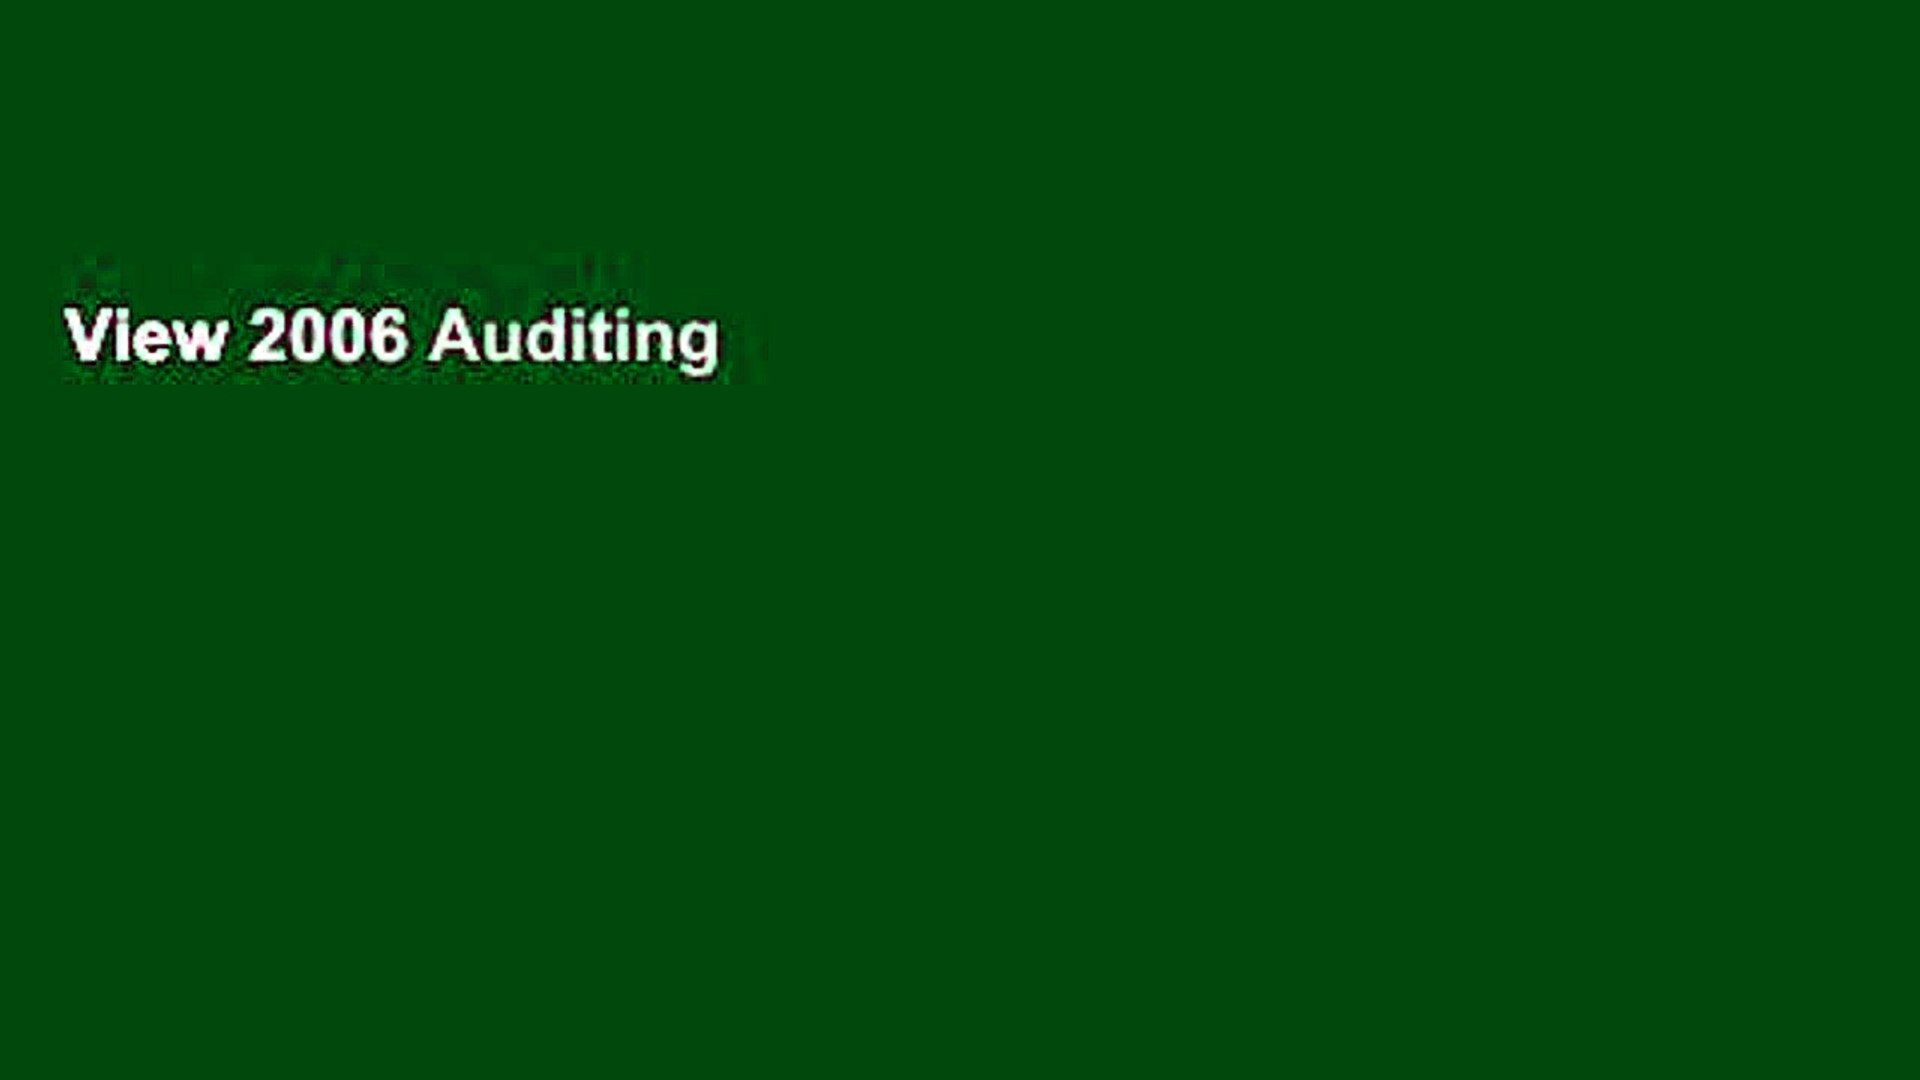 View 2006 Auditing Standards: Including the Standards of the PCAOB Ebook 2006 Auditing Standards: